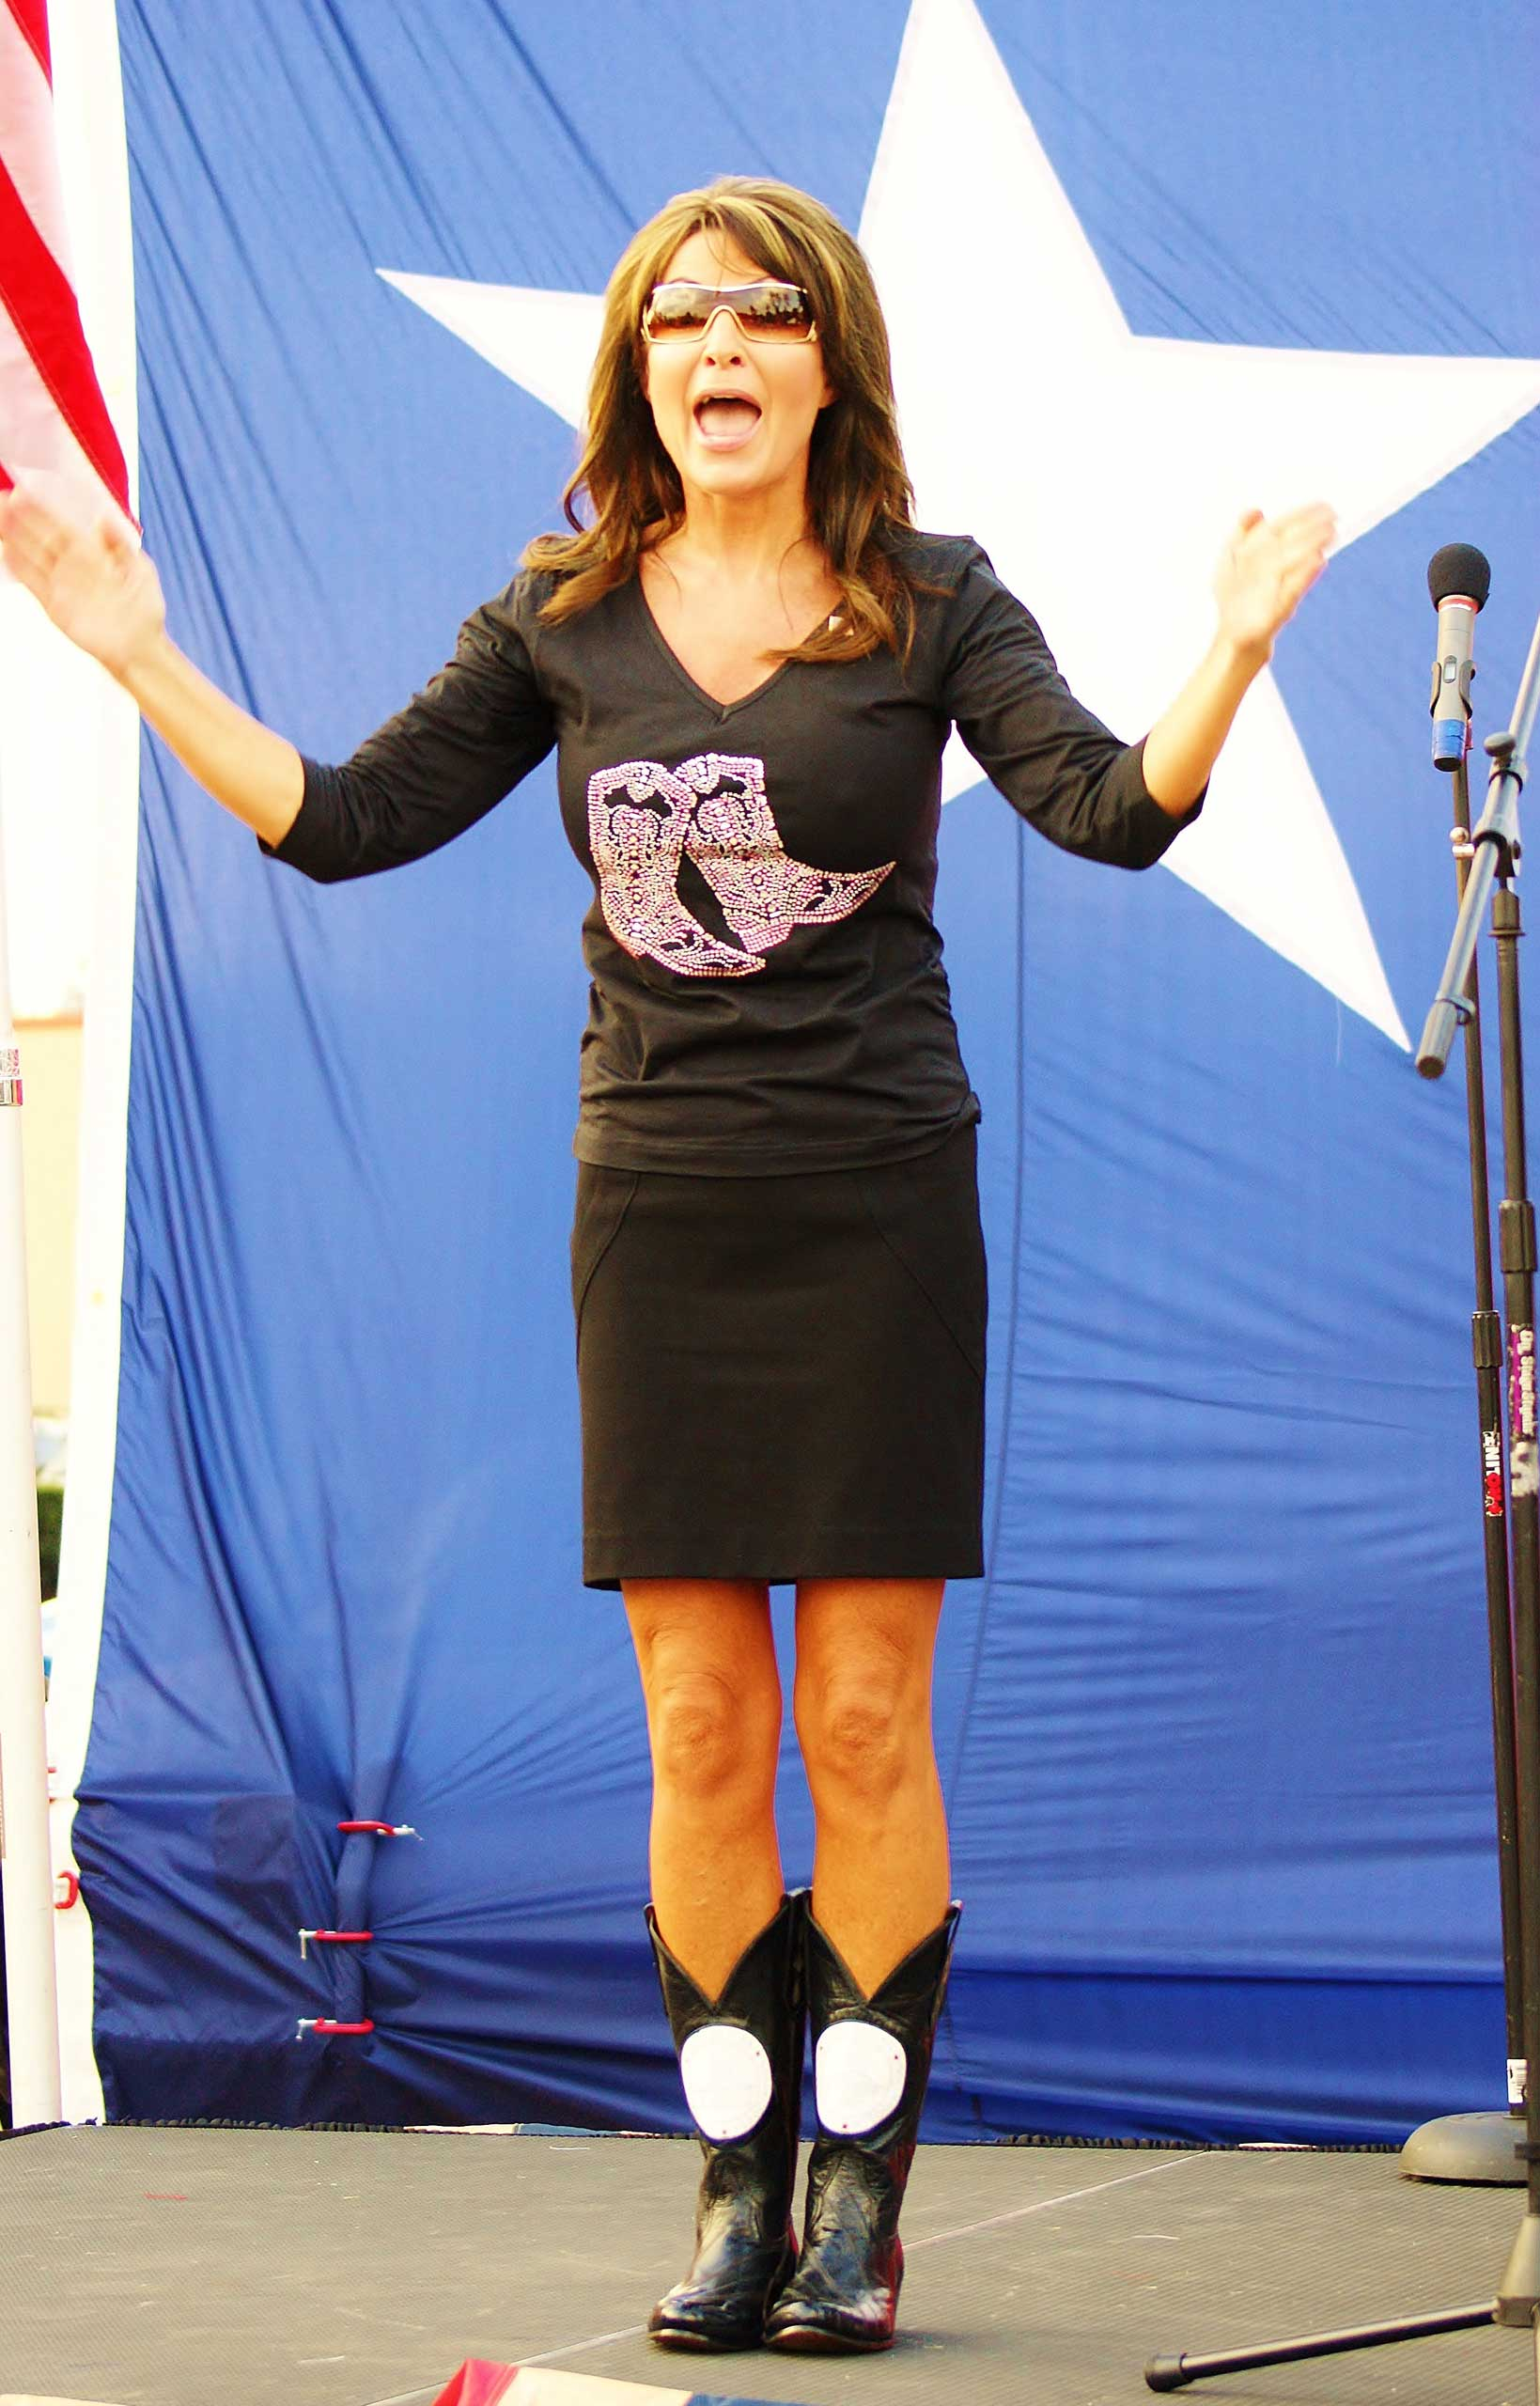 It's not just men. Former Alaska Gov. Sarah Palin has been known to put on a pair of cowboy boots.